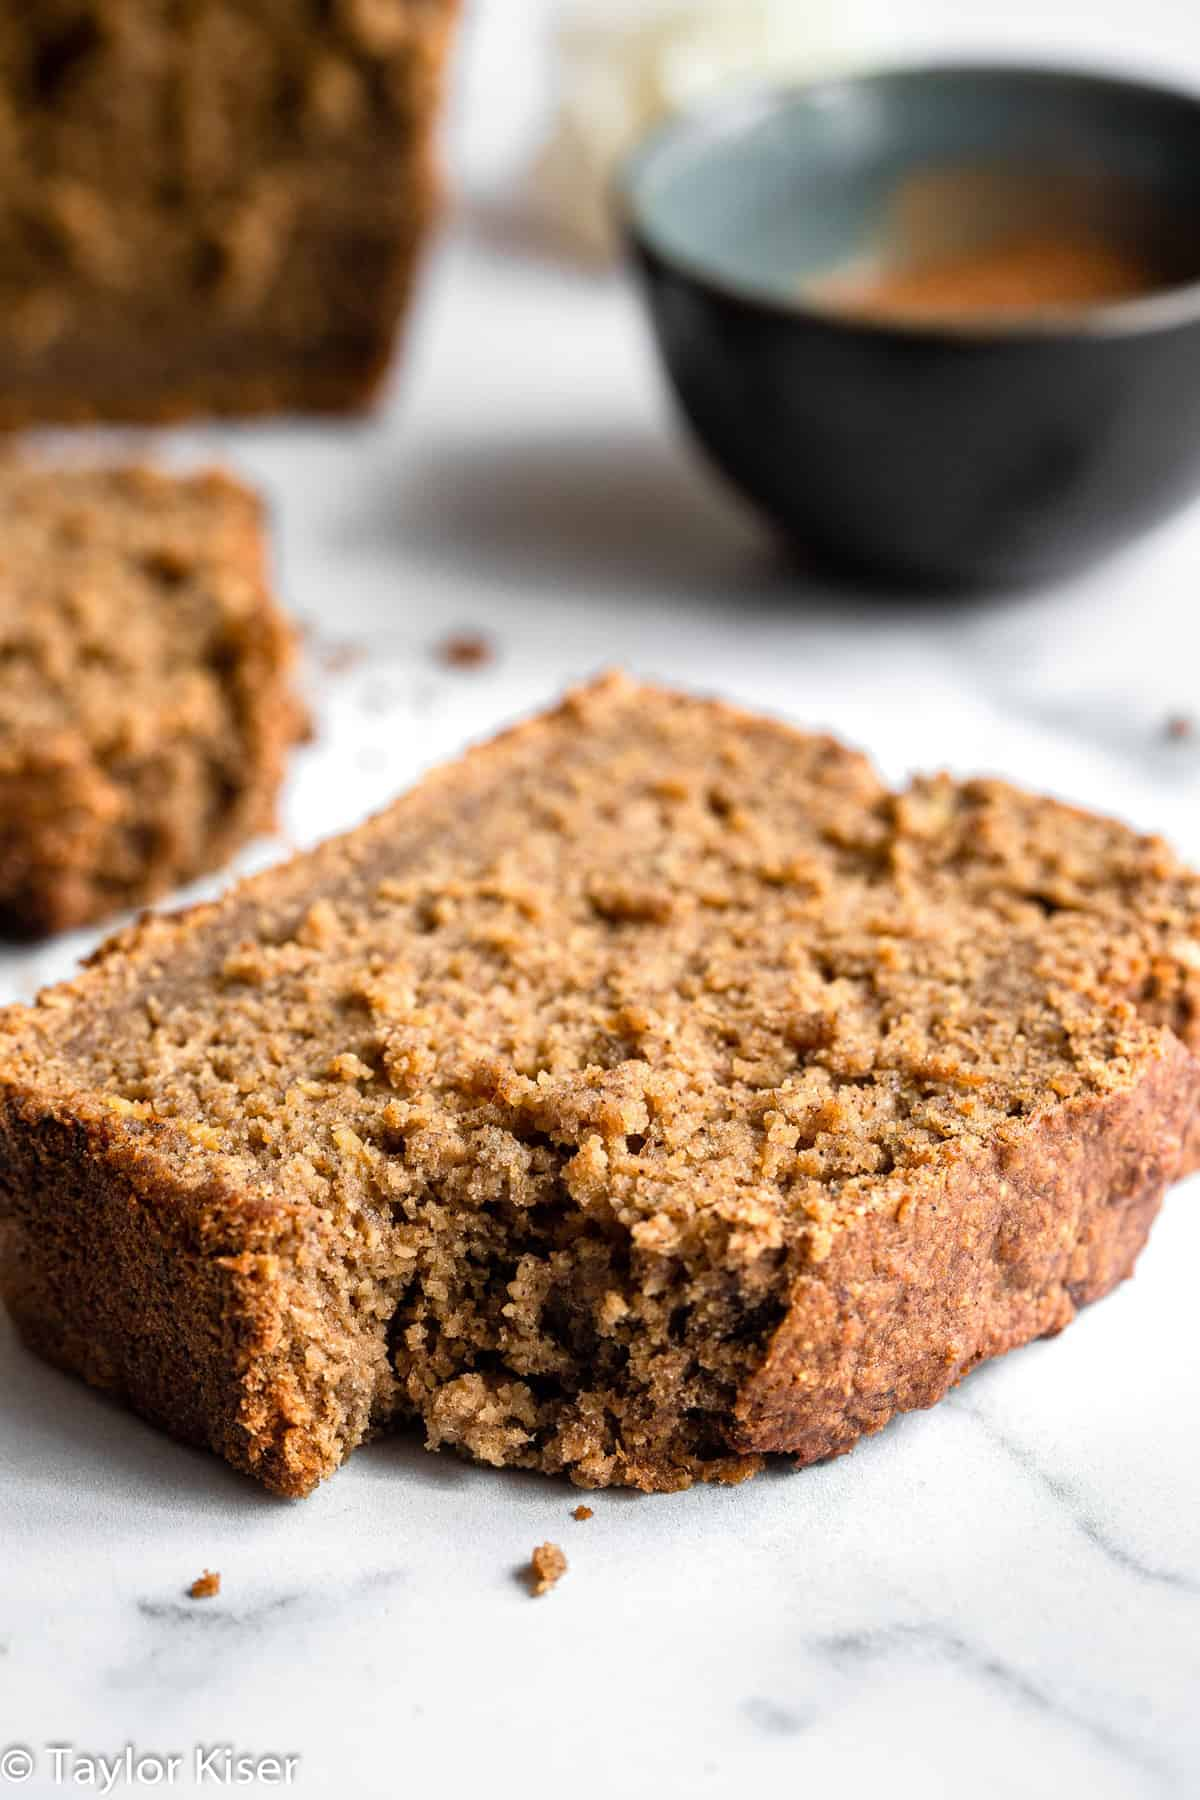 vegan gluten free banana bread with a bite out of a slice